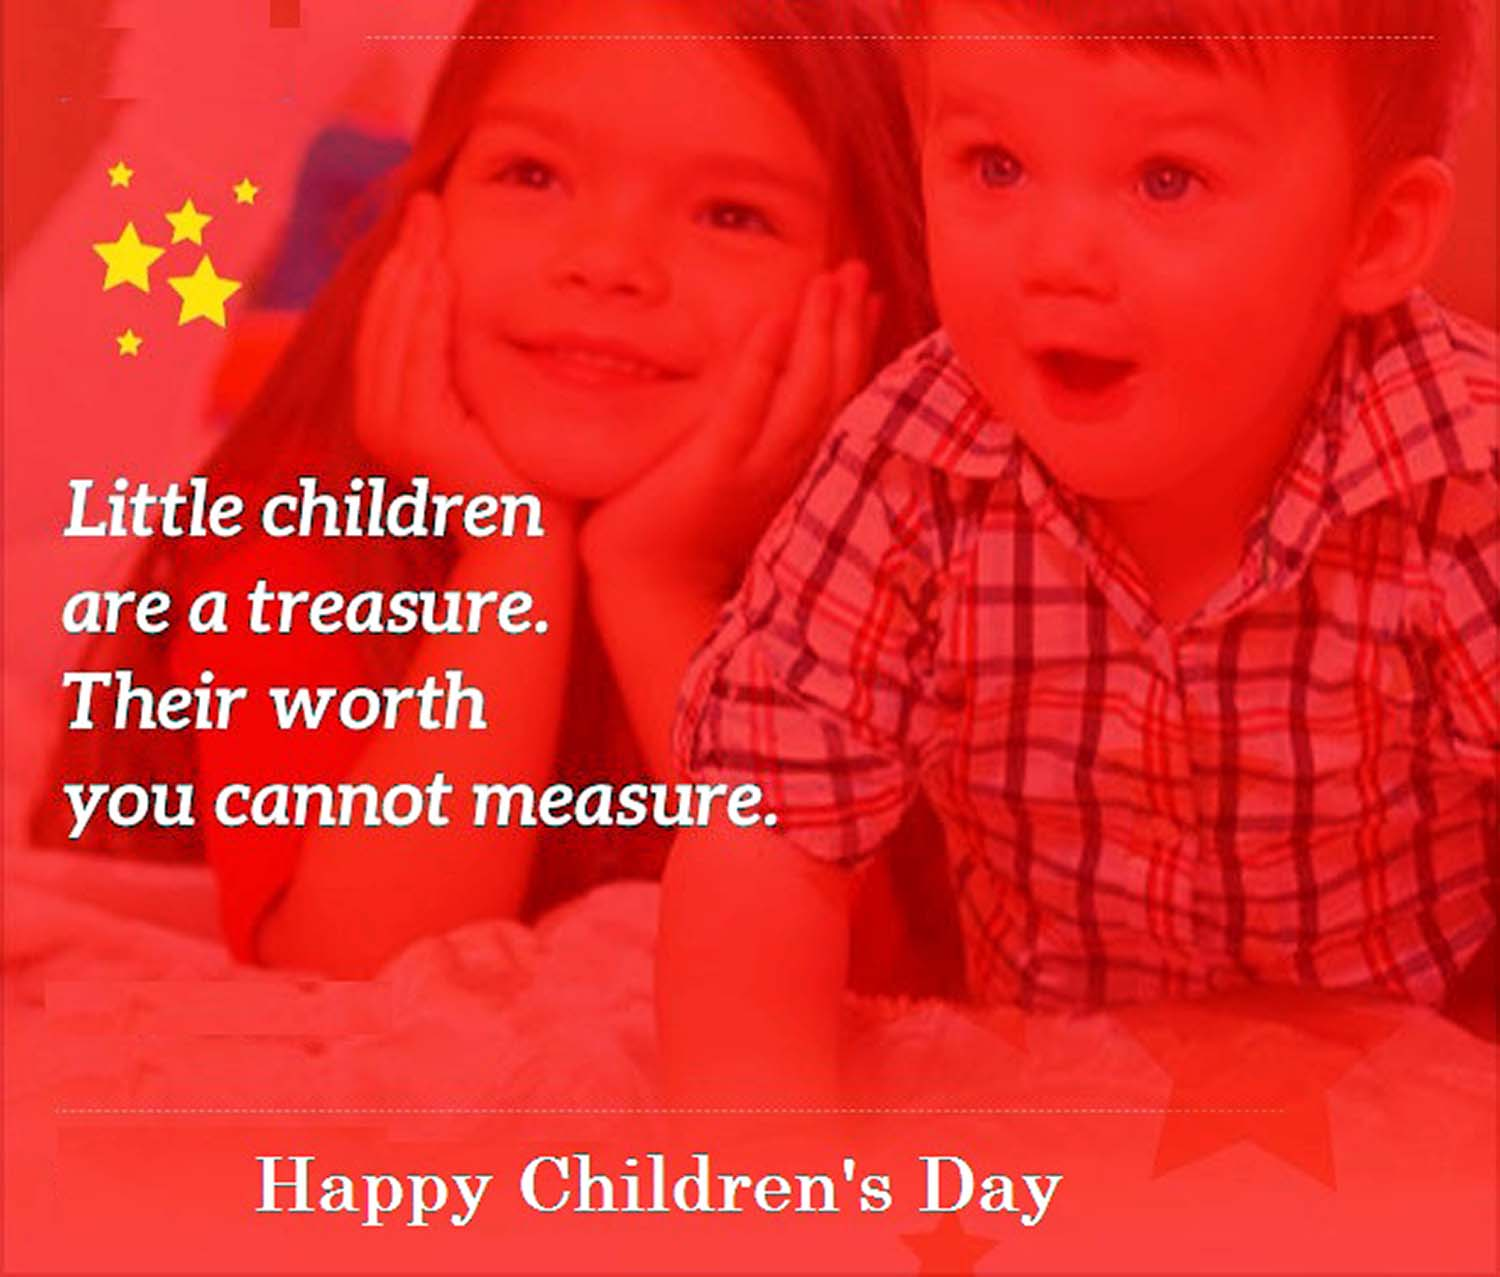 children's day poems for church